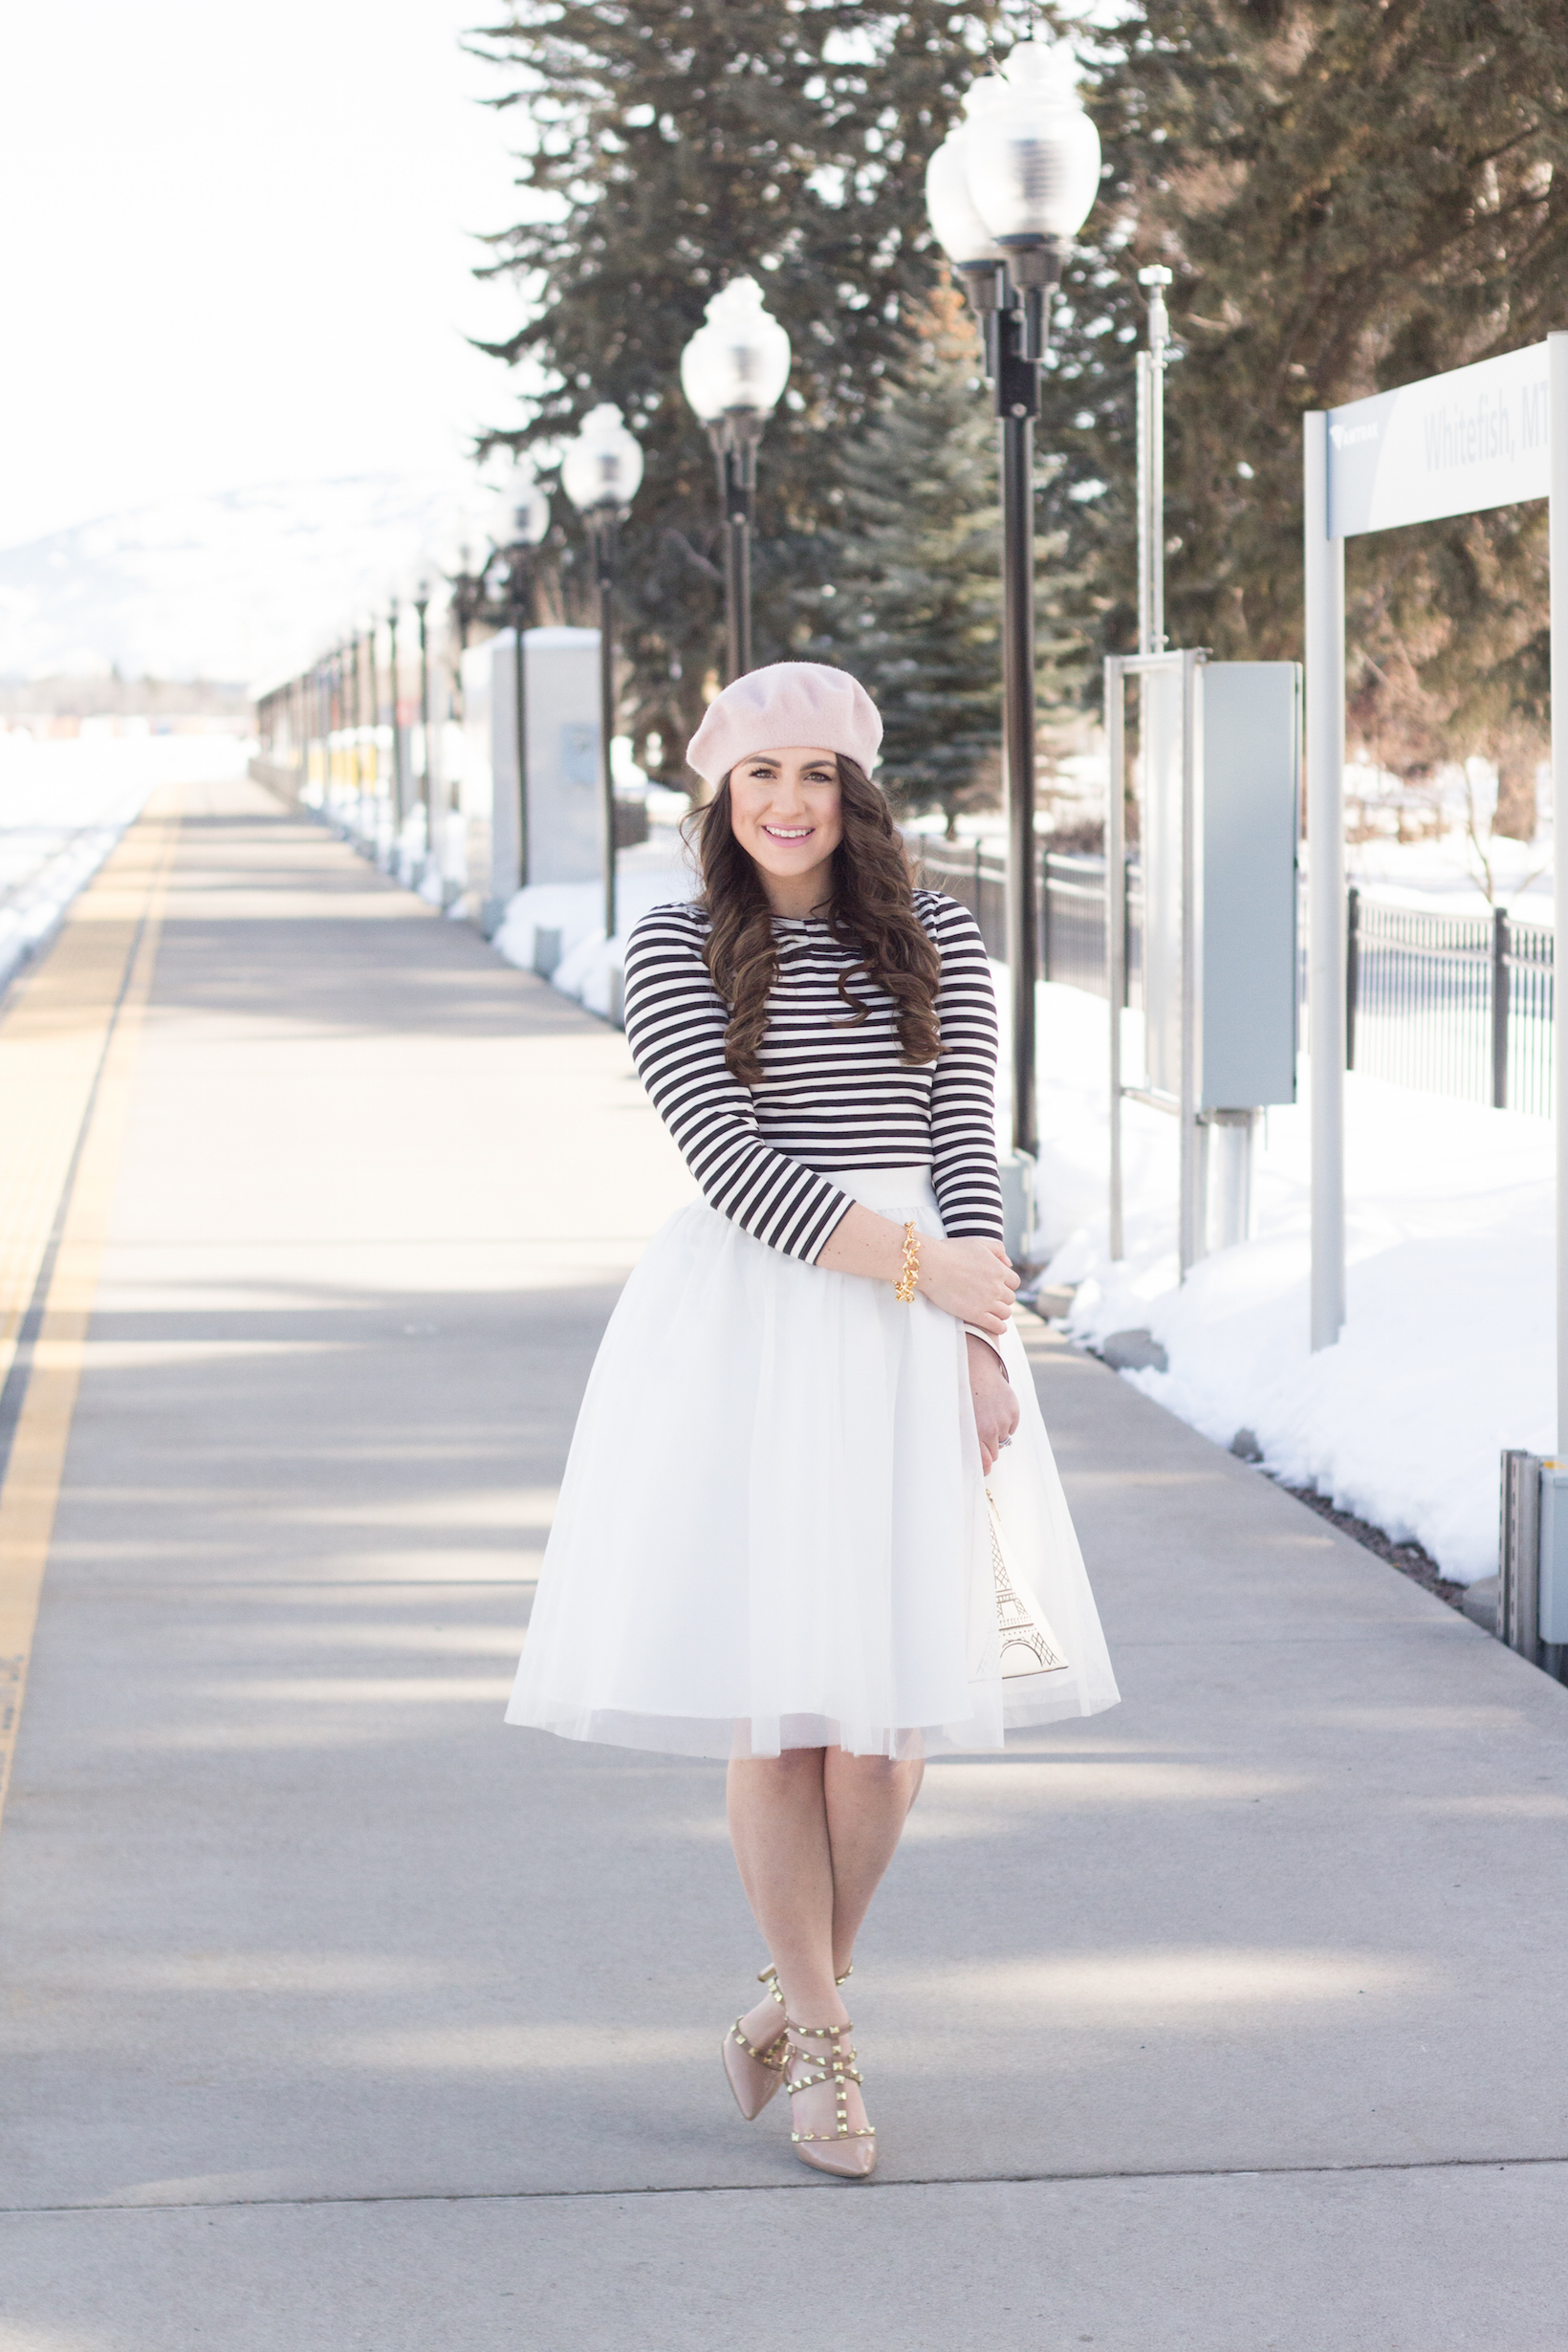 Trying out the best Parisian flair with a tulle skirt and beret.